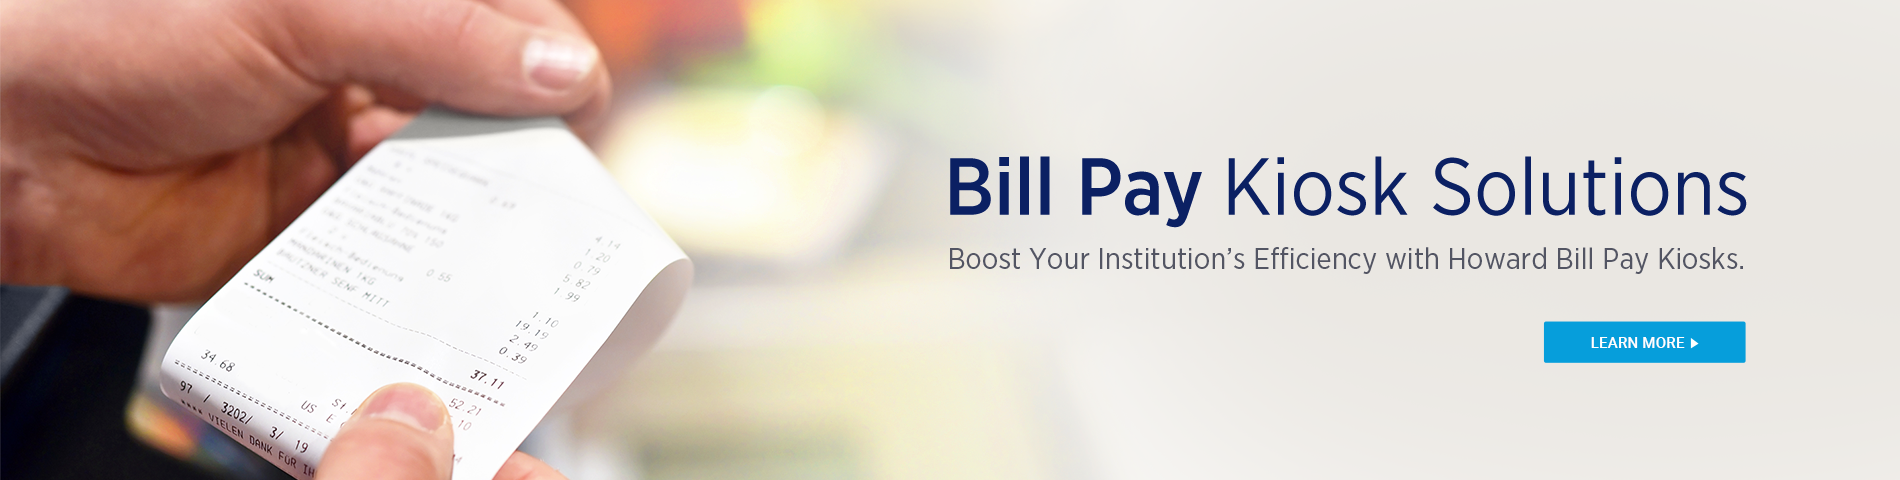 Howard Bill Pay Kiosk Solutions